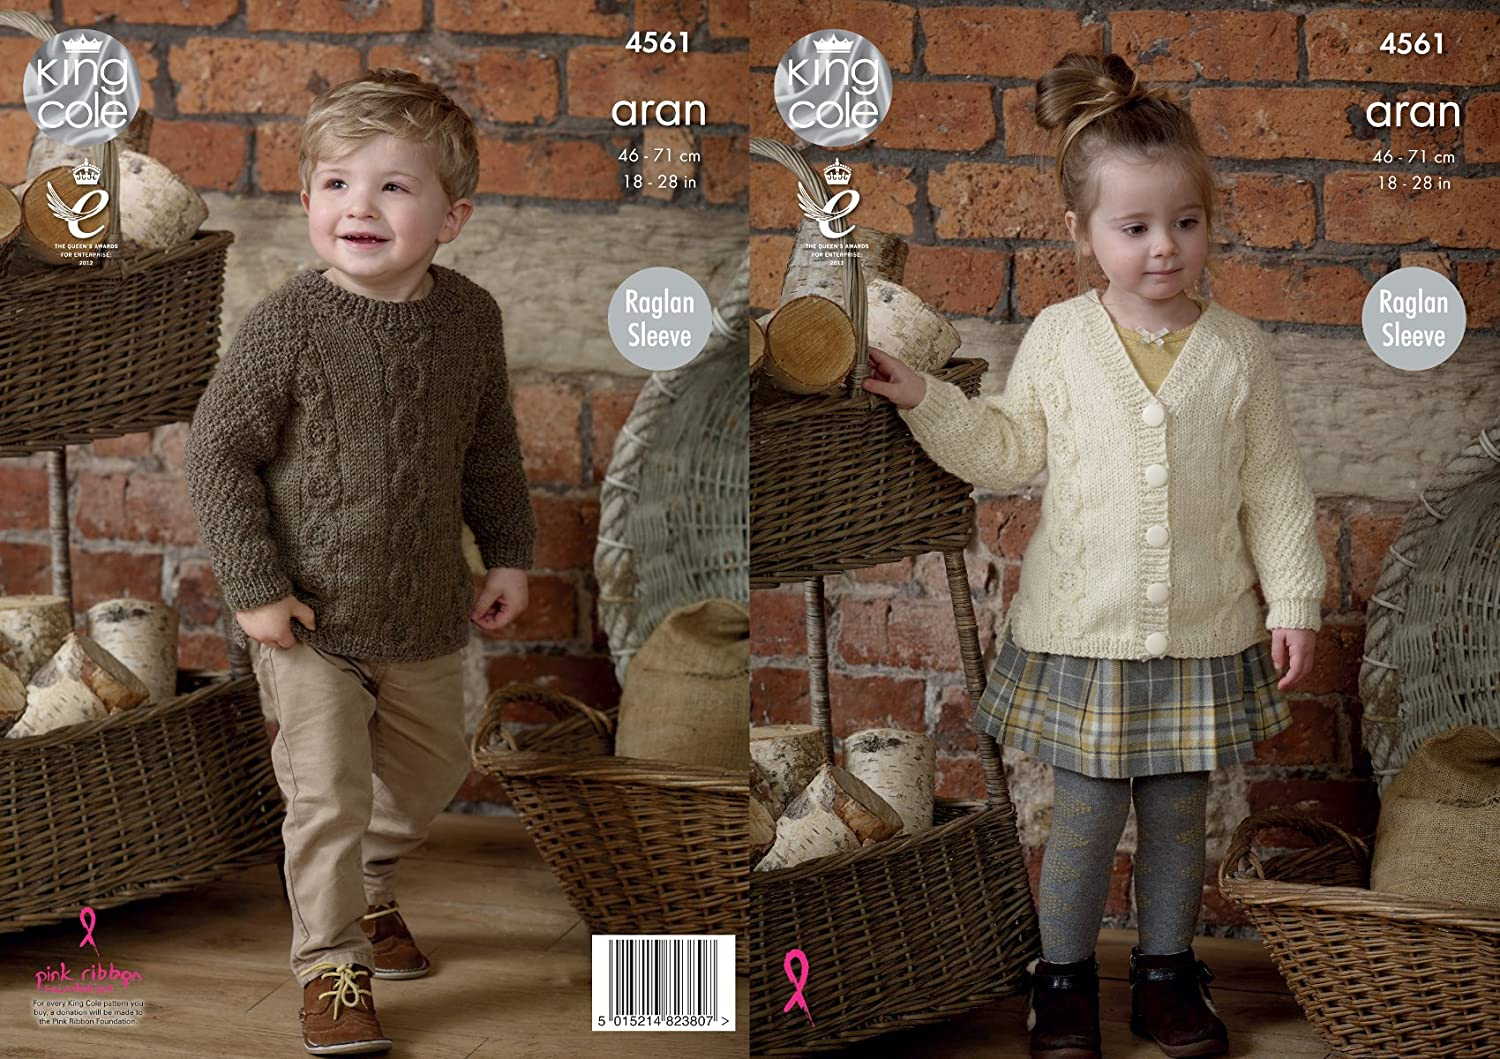 King Cole Childrens Knitting Pattern Raglan Sleeve Tunic & Cardigan Fashion Aran (4561)